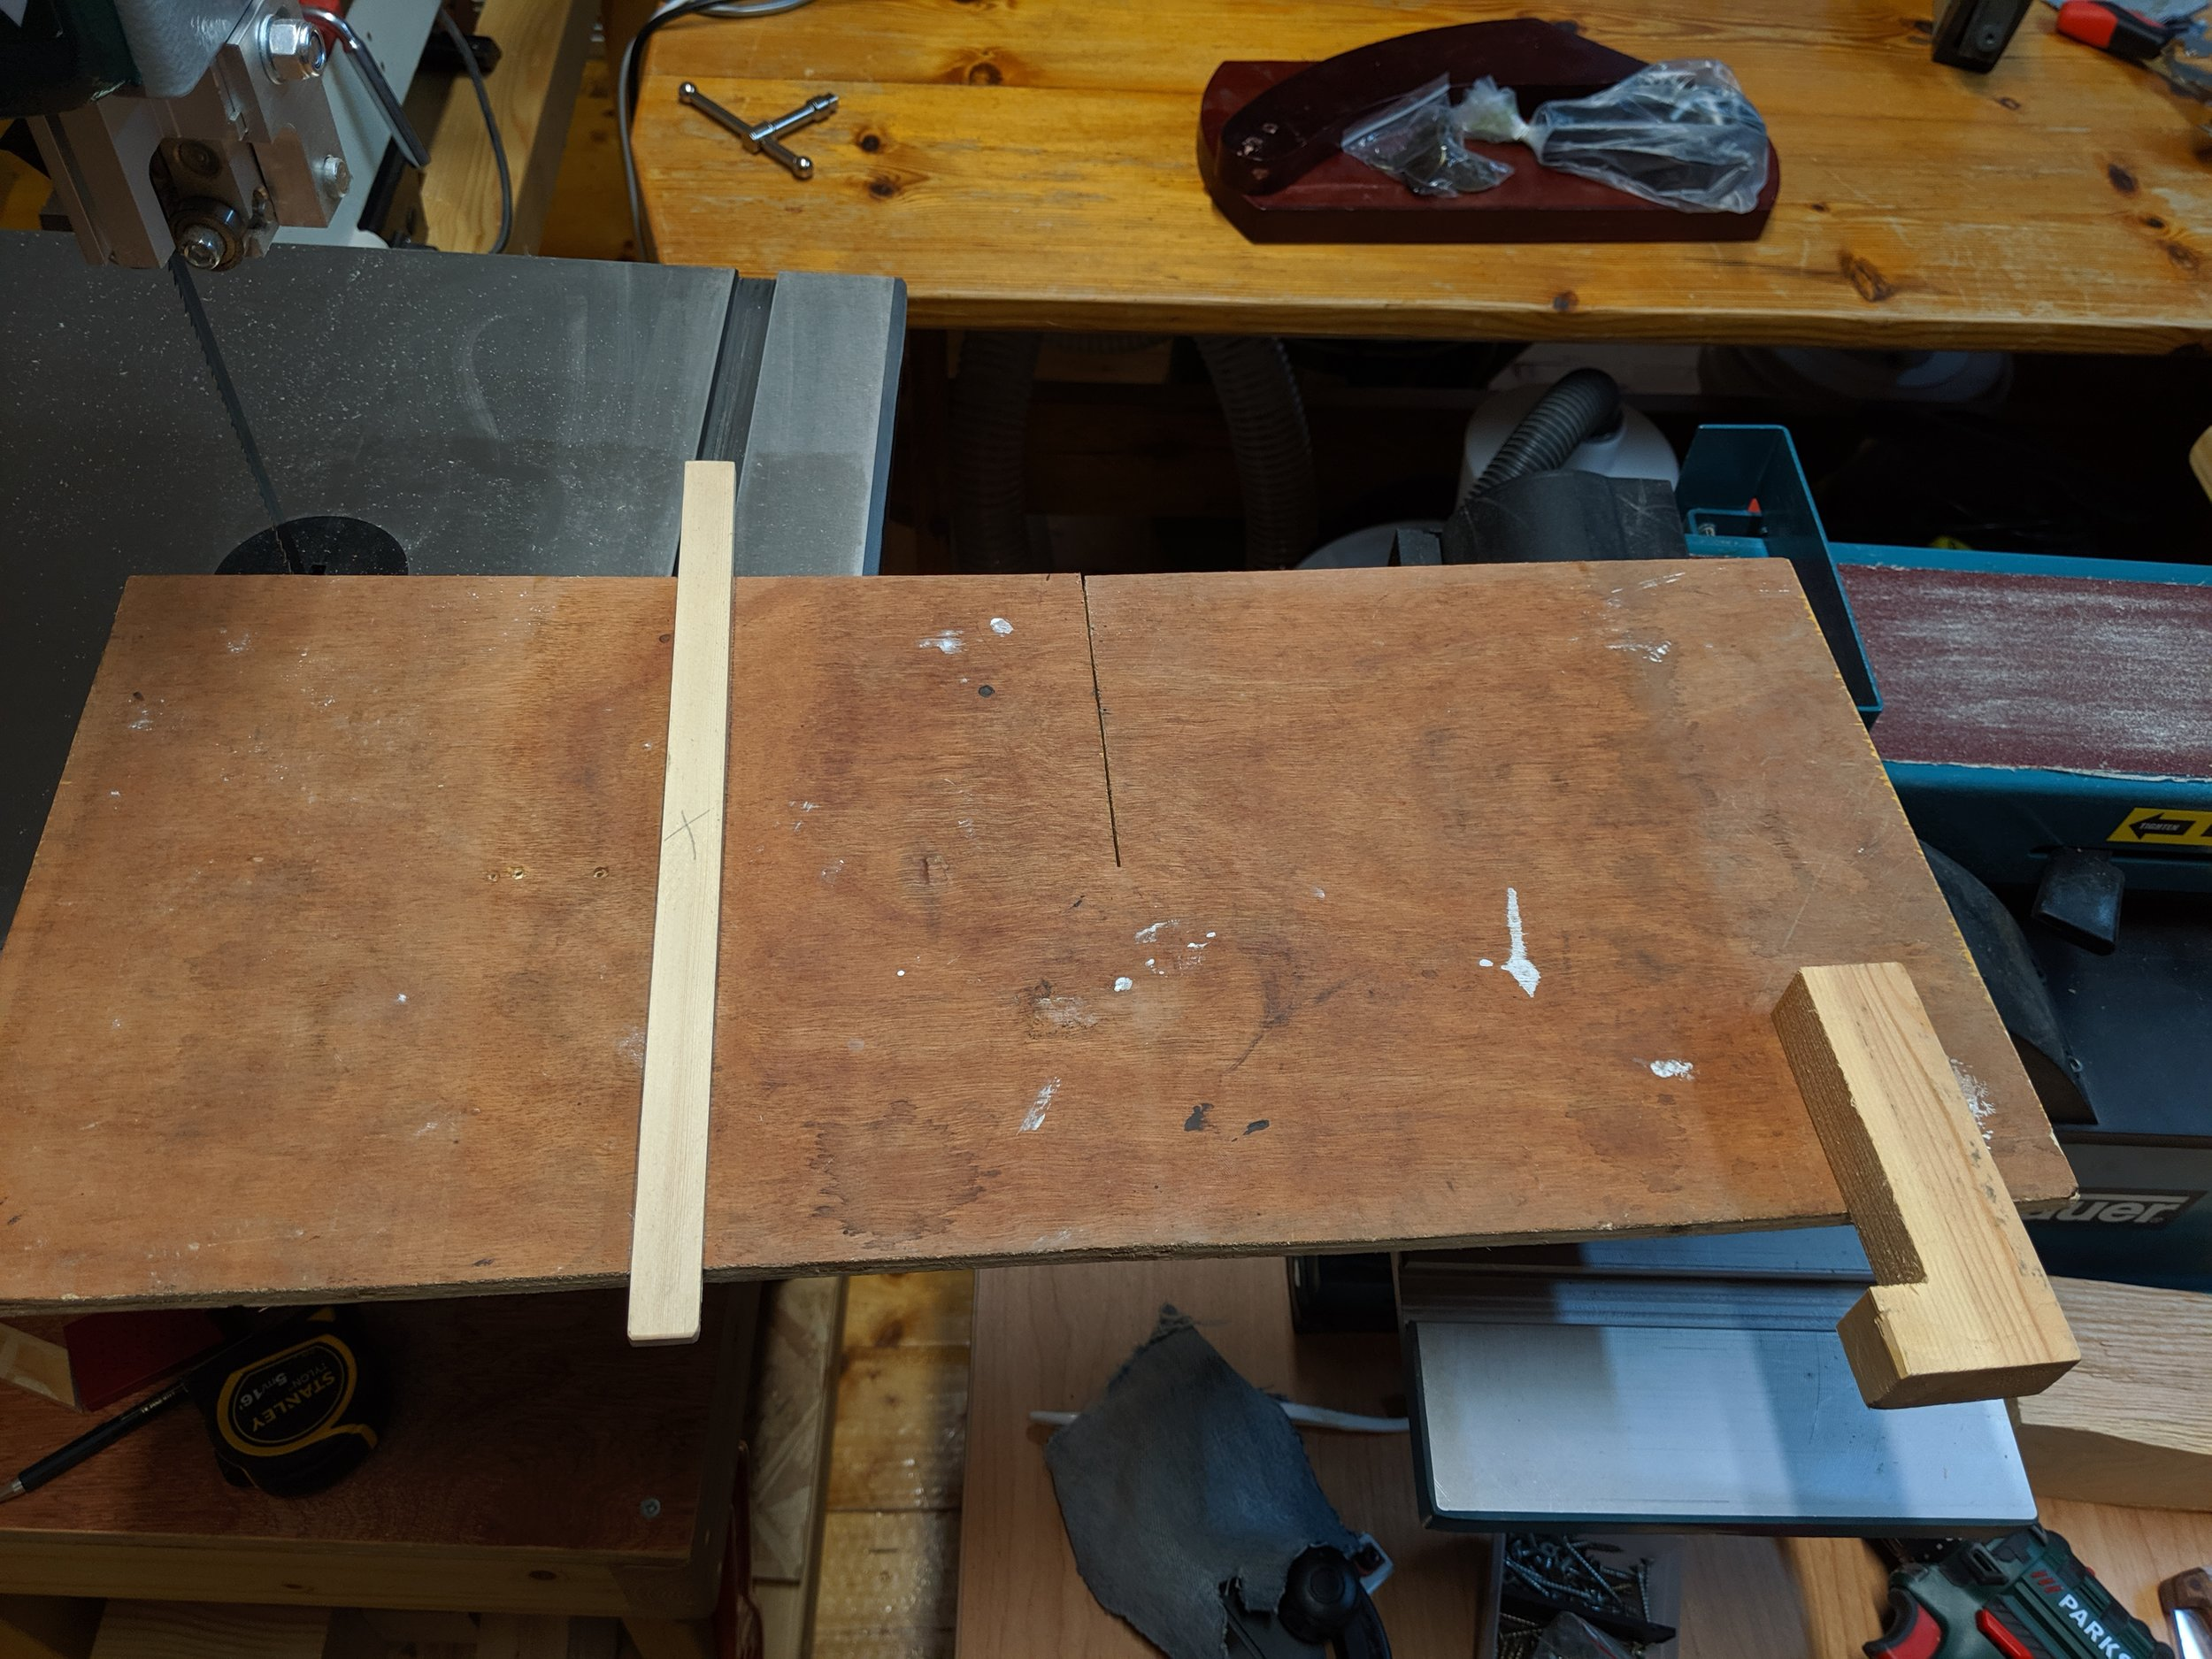 Underside showing runner and stop prior to waxing.